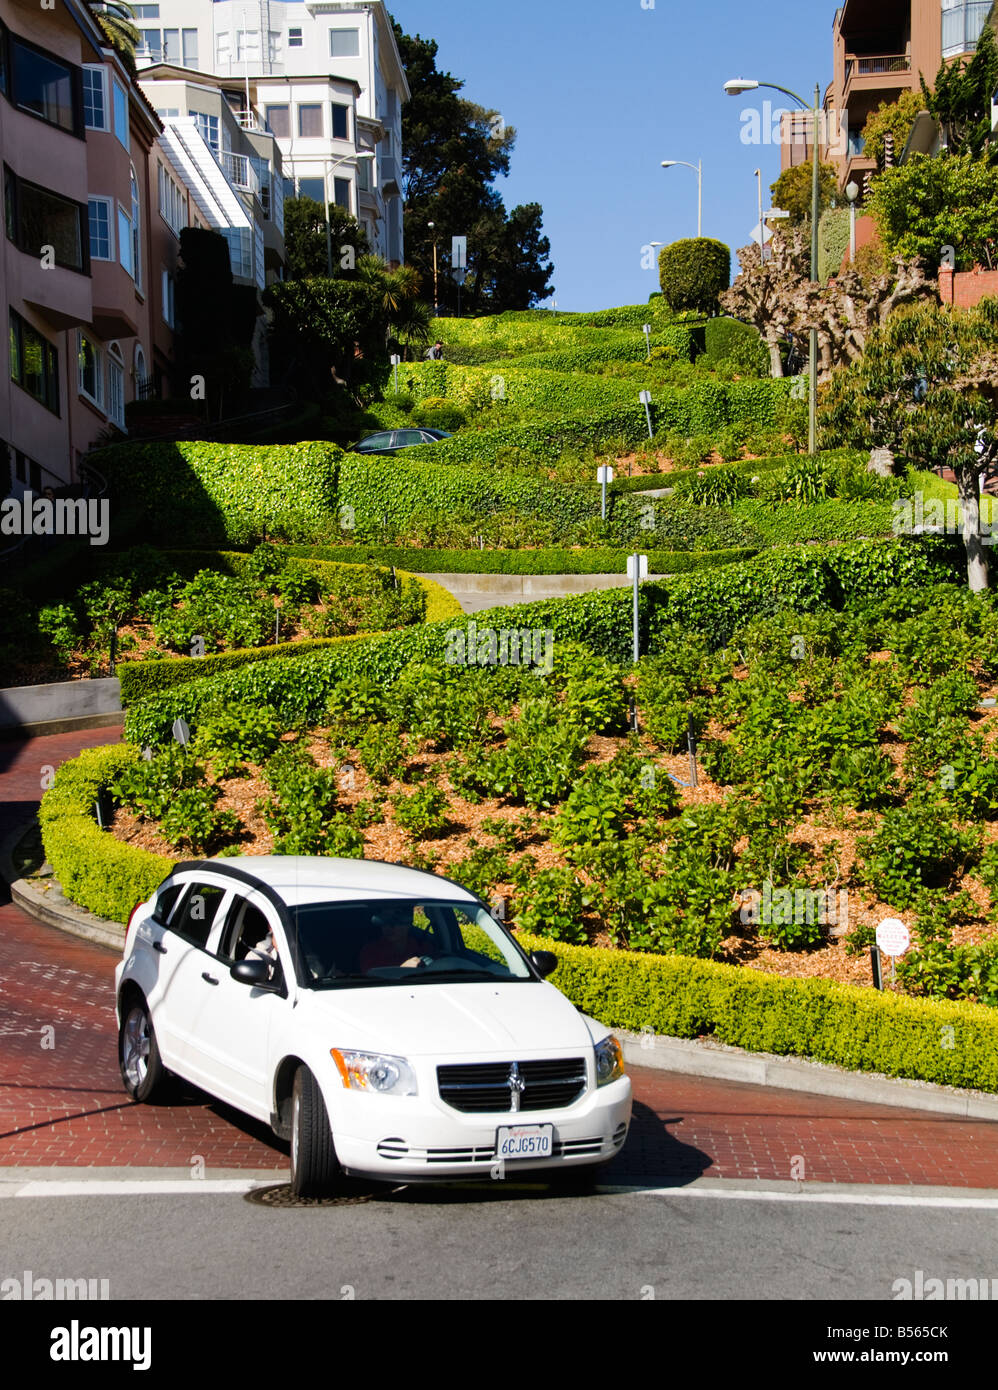 California San Francisco The Crookedest Street Lombard at Hyde Photo 19 casanf78853 Photo Lee Foster 2008 - Stock Image